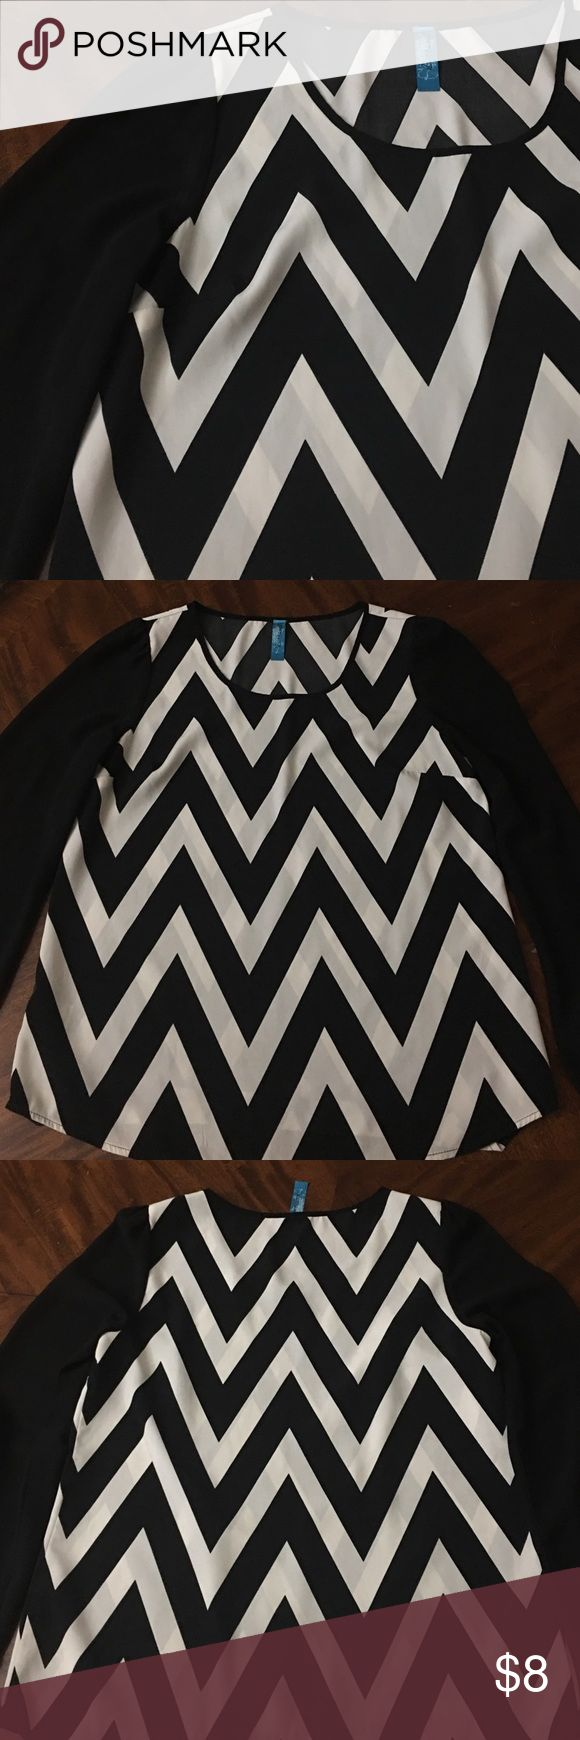 Francesca's Chevron Top Black and white chevron top from Francesca's. Sleeves are sheer and top is in like new condition. 30% off of bundles of 2 or more! Francesca's Collections Tops